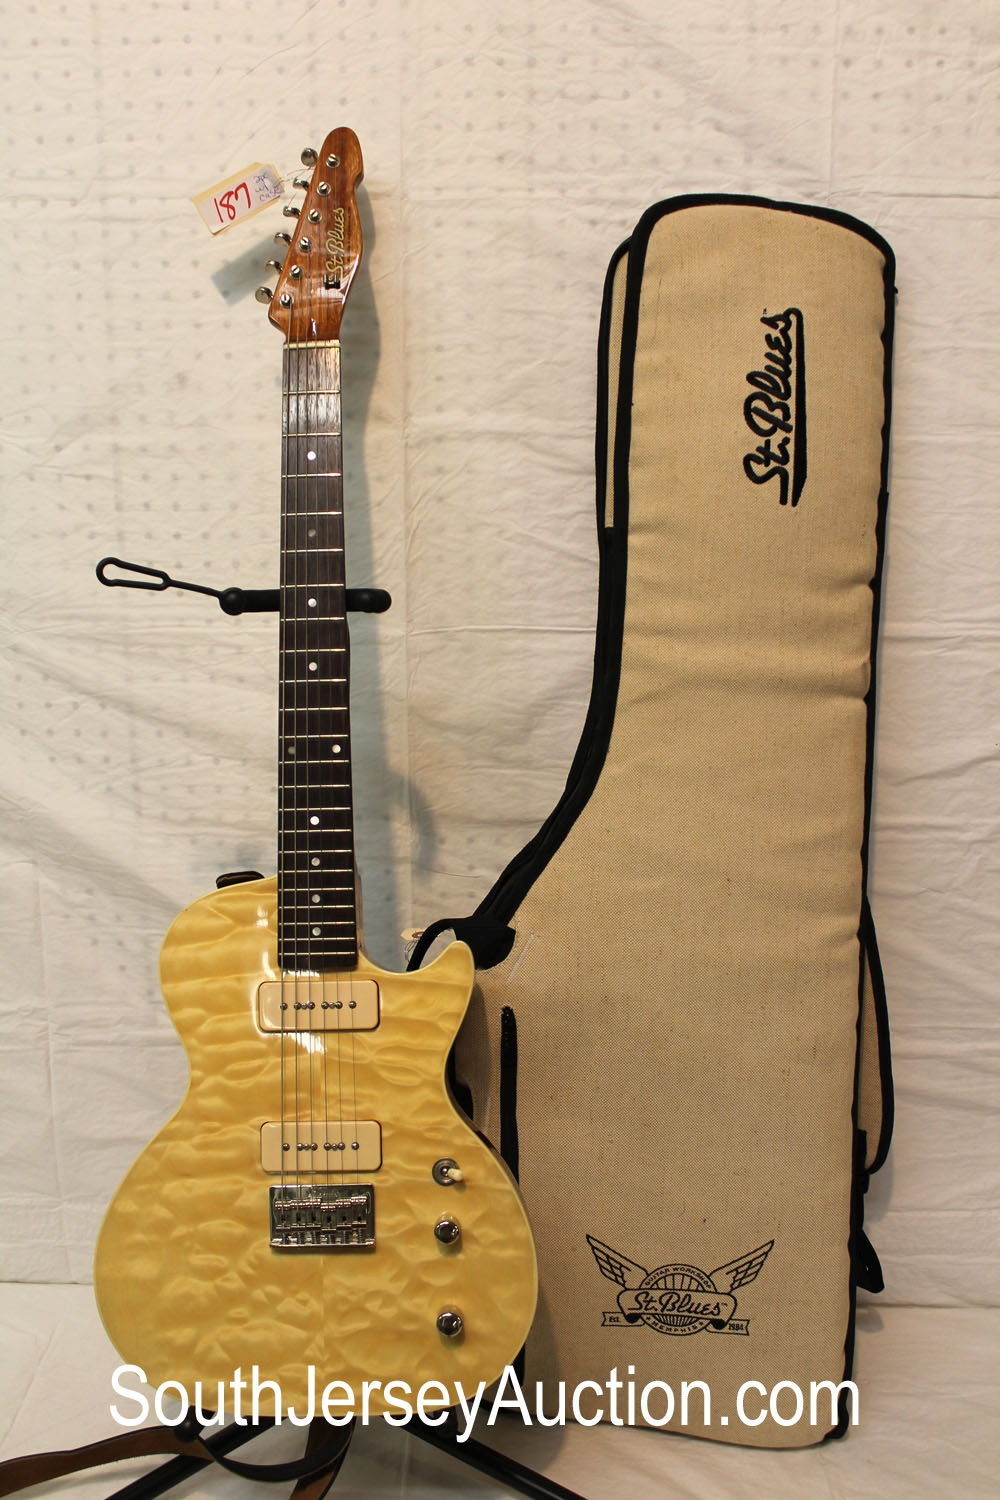 Saint Blues in Memphis Tennessee, year unknown, maple light tiger eye finish, P-90 pickups, made in Korea, s/n S090410620, very good condition with match soft gig bag